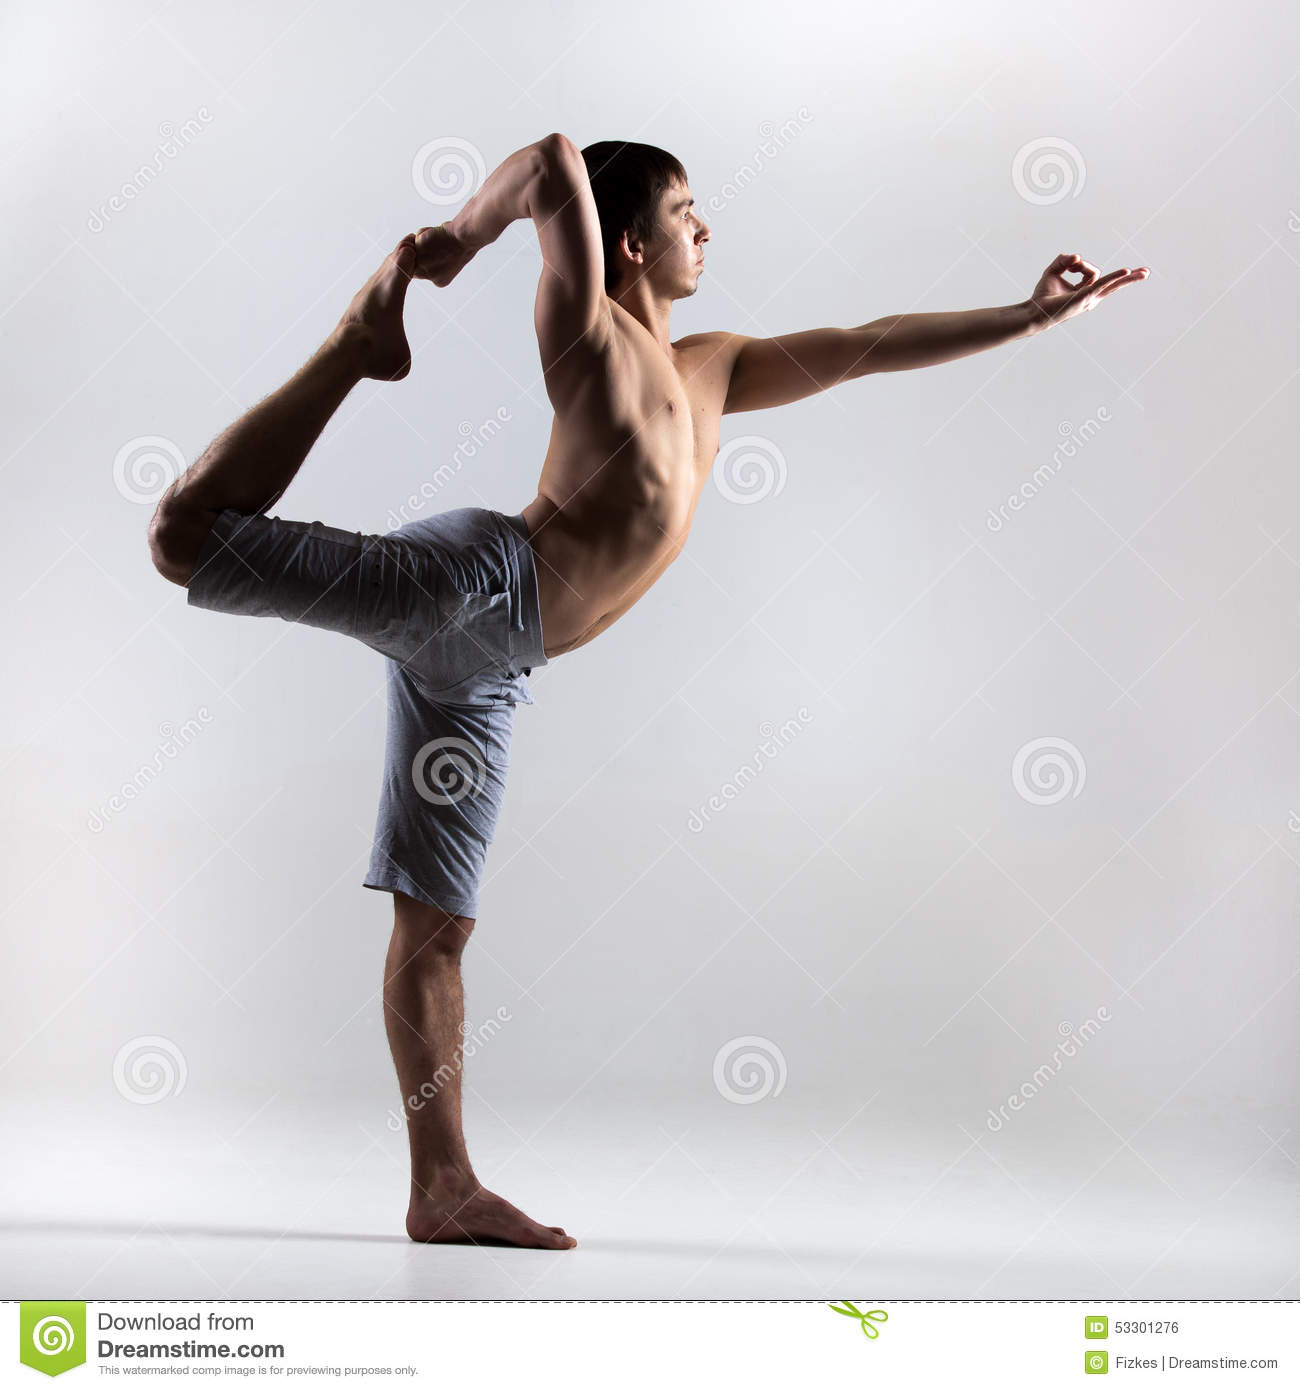 Download Lord Of The Dance Yoga Pose Stock Photo